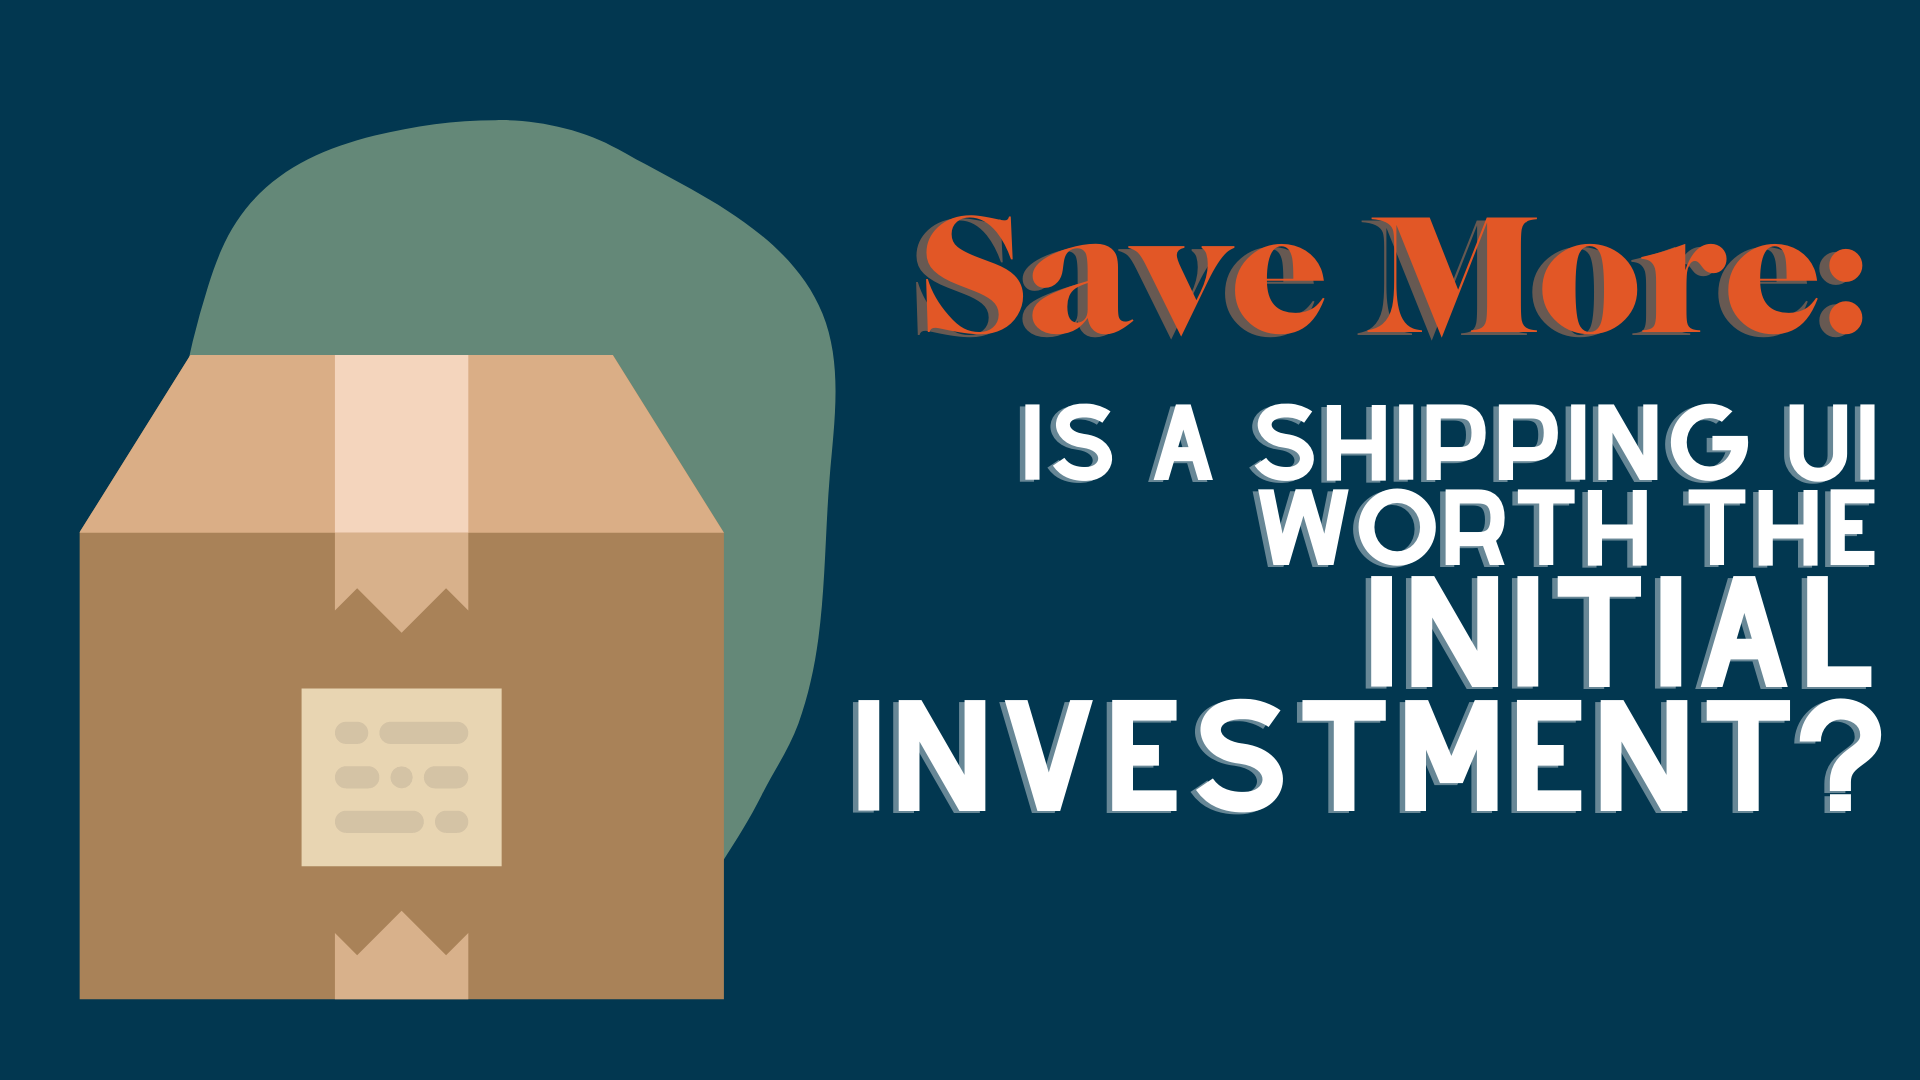 Save More: Is Using a Shipping UI Worth the Initial Investment?